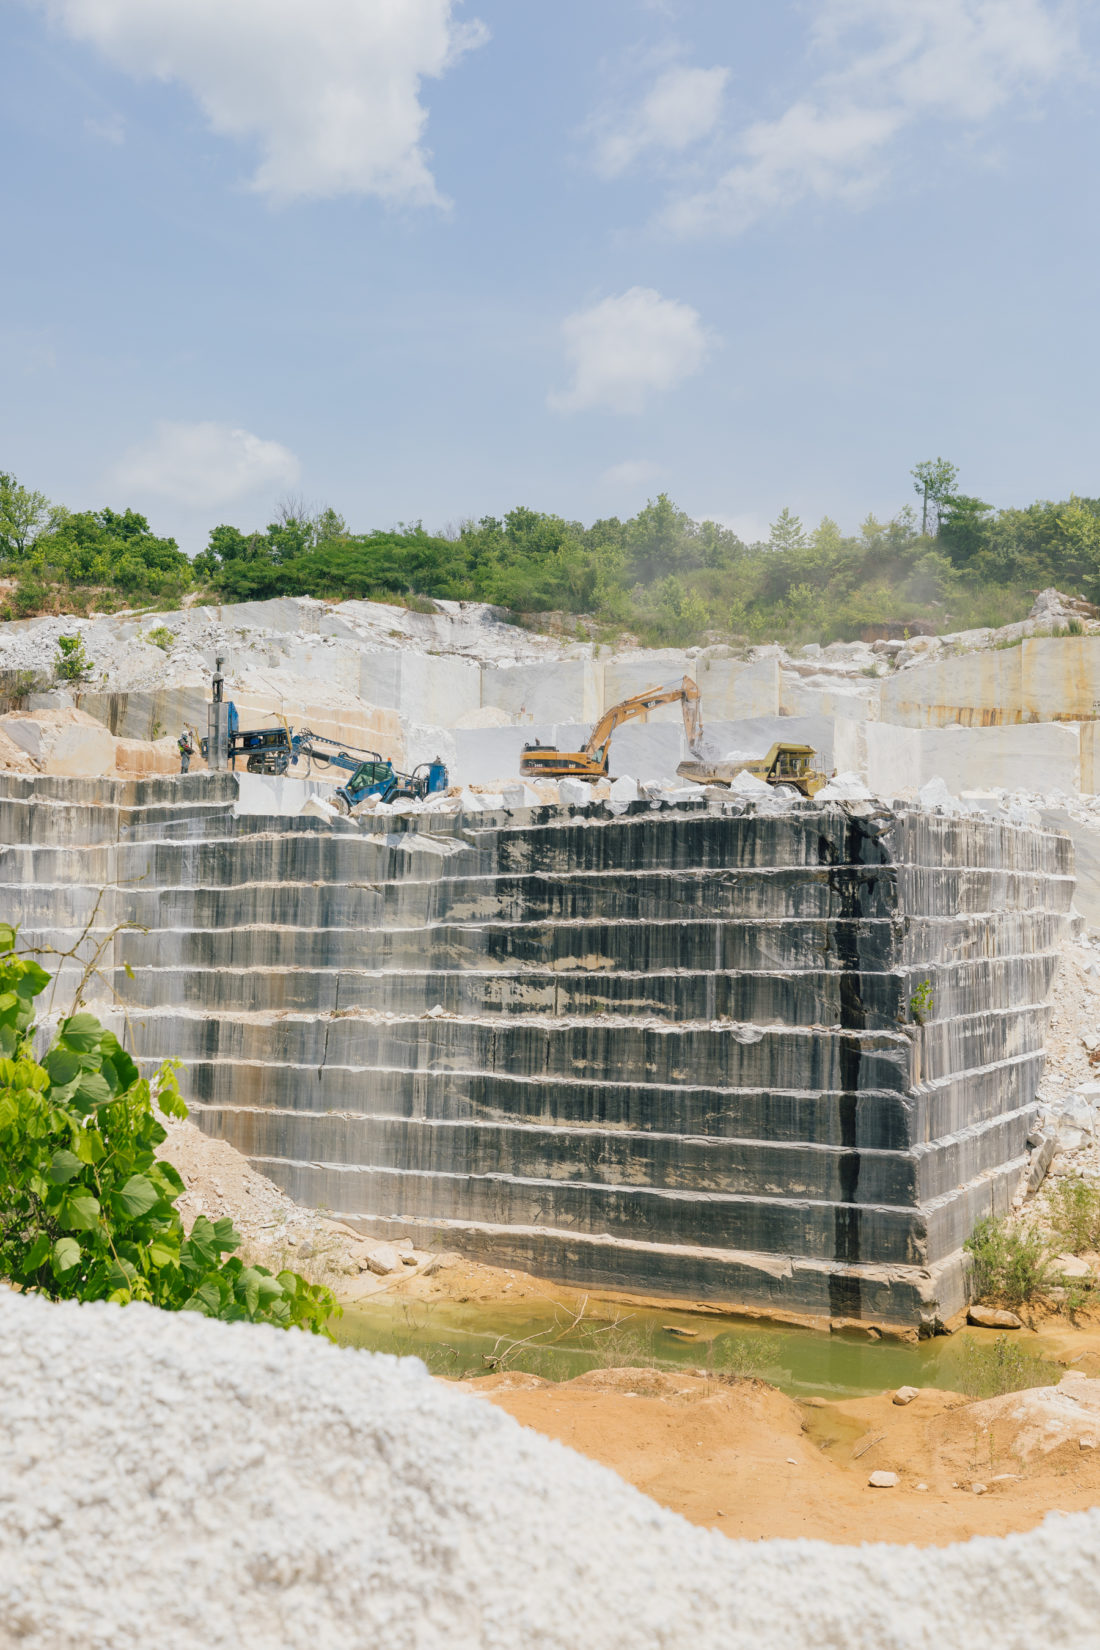 The Polycor marble quarry in Georgia